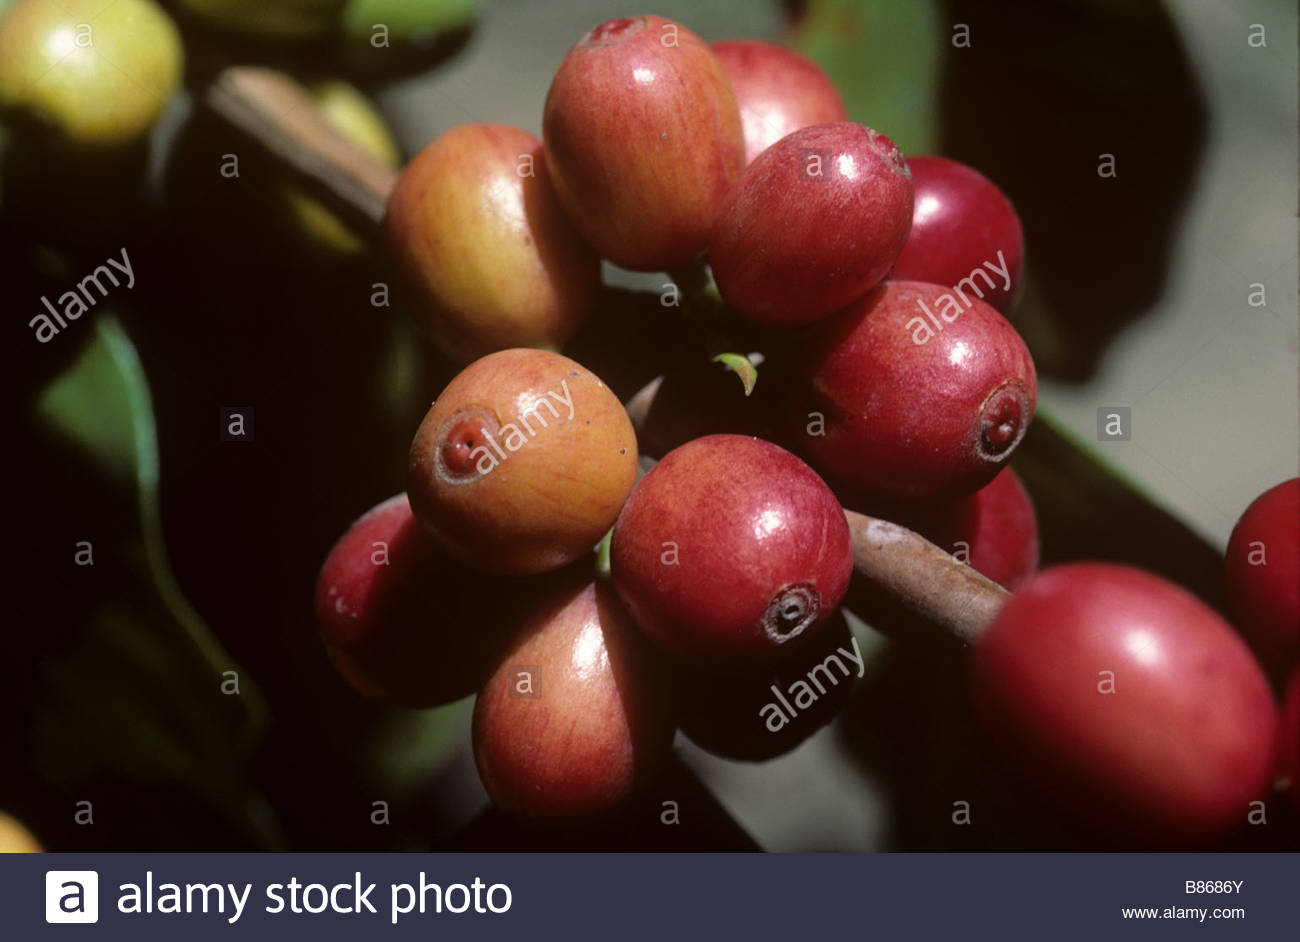 Ripe red arabica coffee berries Colombia - Stock Image